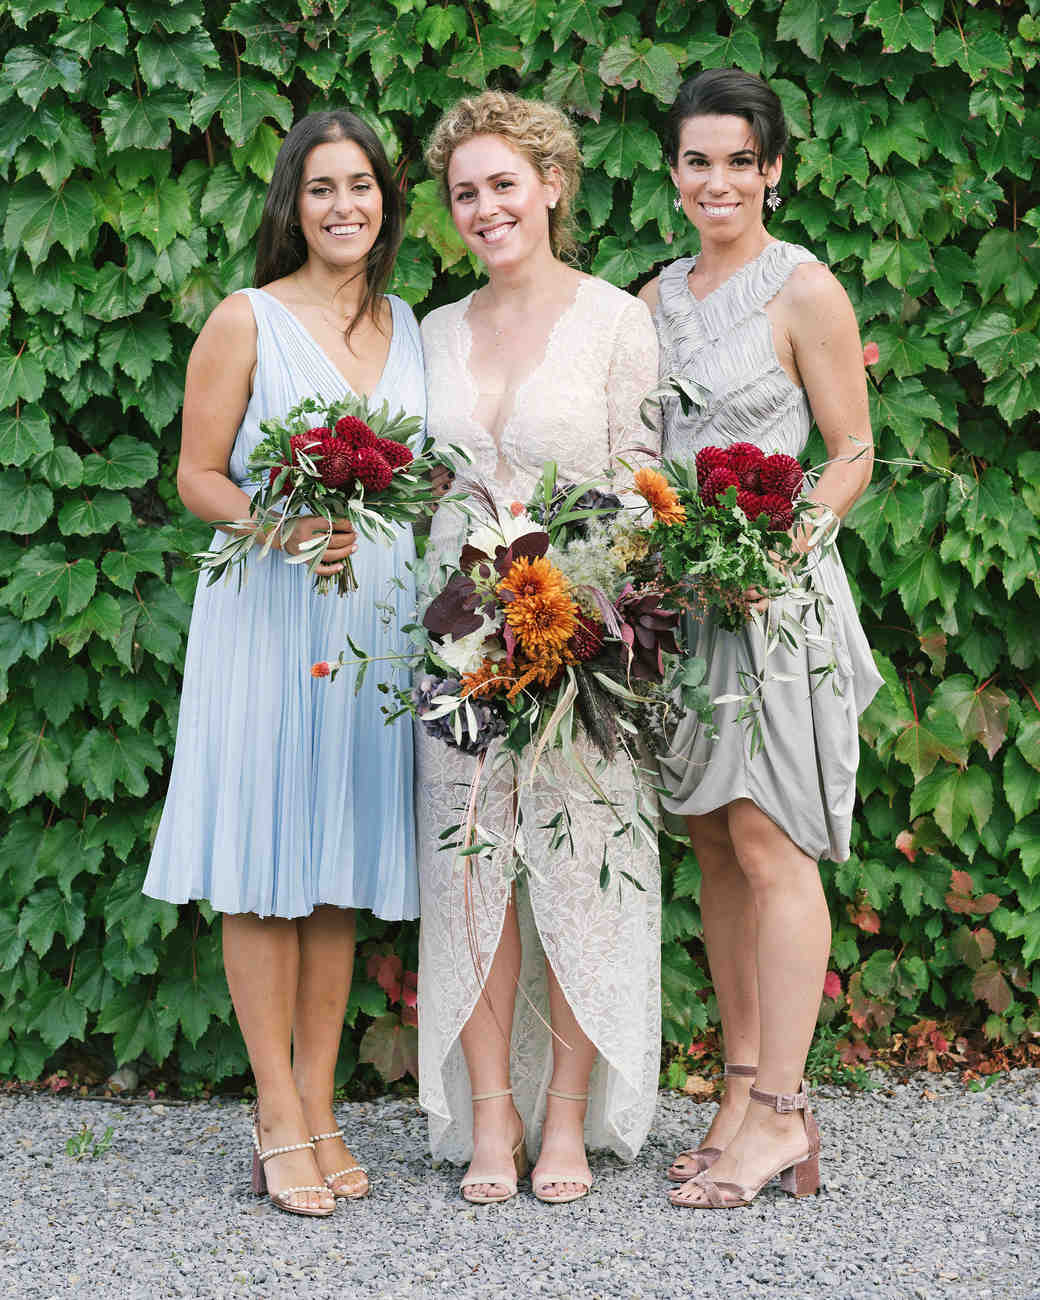 molly michael wedding bridesmaids bouquets